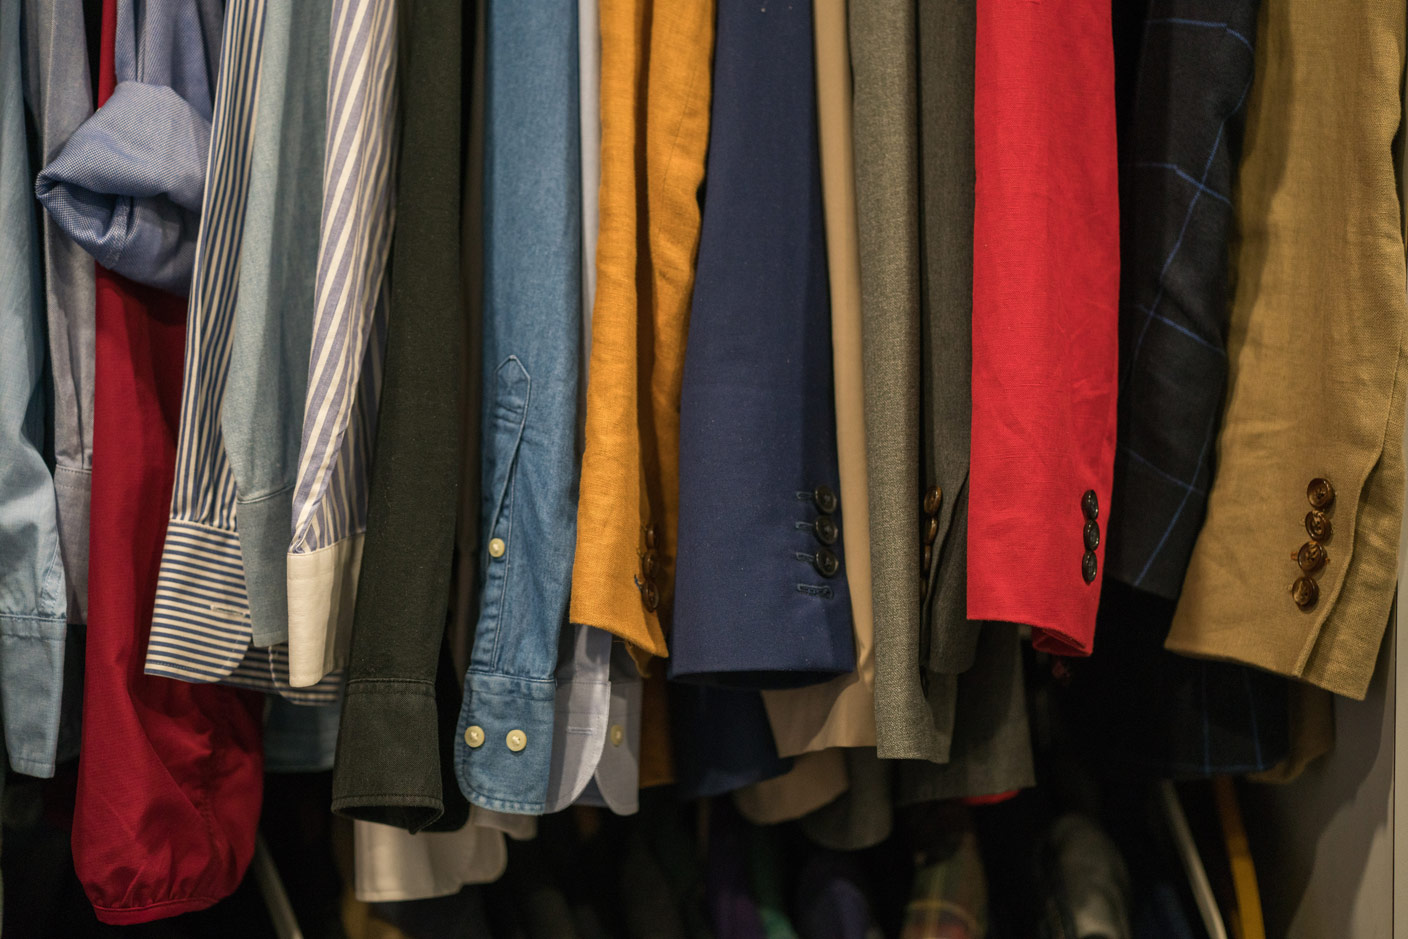 The picture shows clothes on hangers in a second-hand store